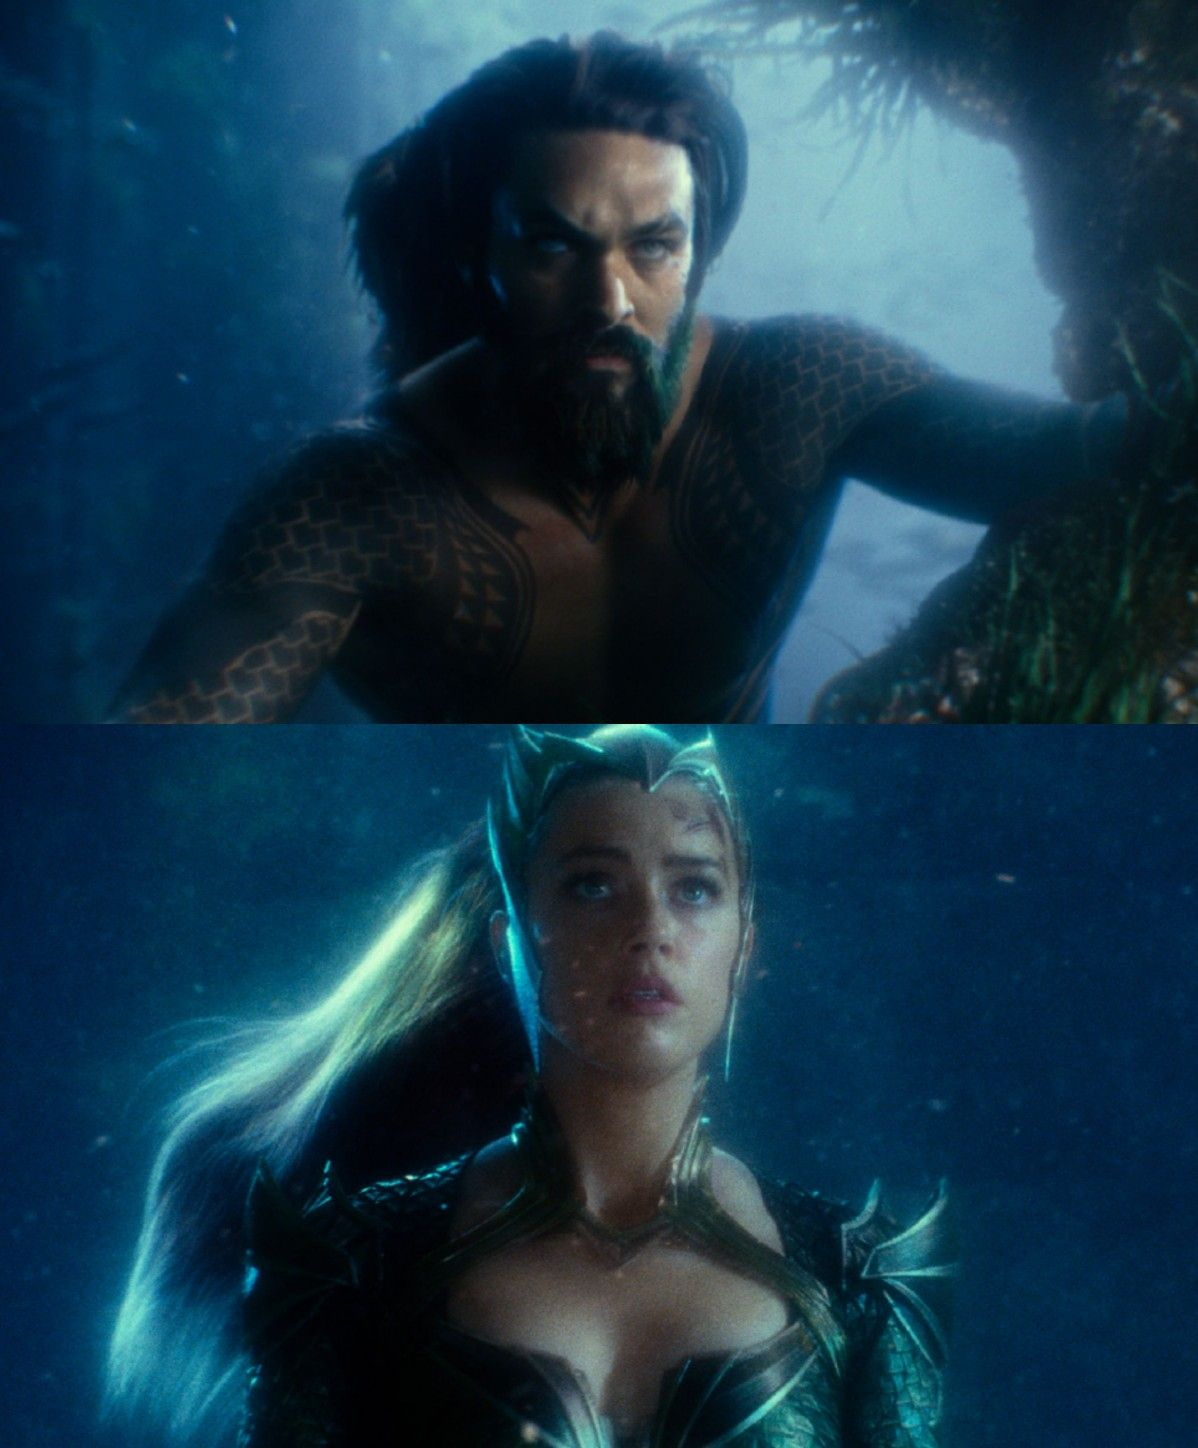 Pin By Therebelscumj On Aquaman Aquaman Film Aquaman Comic Aquaman